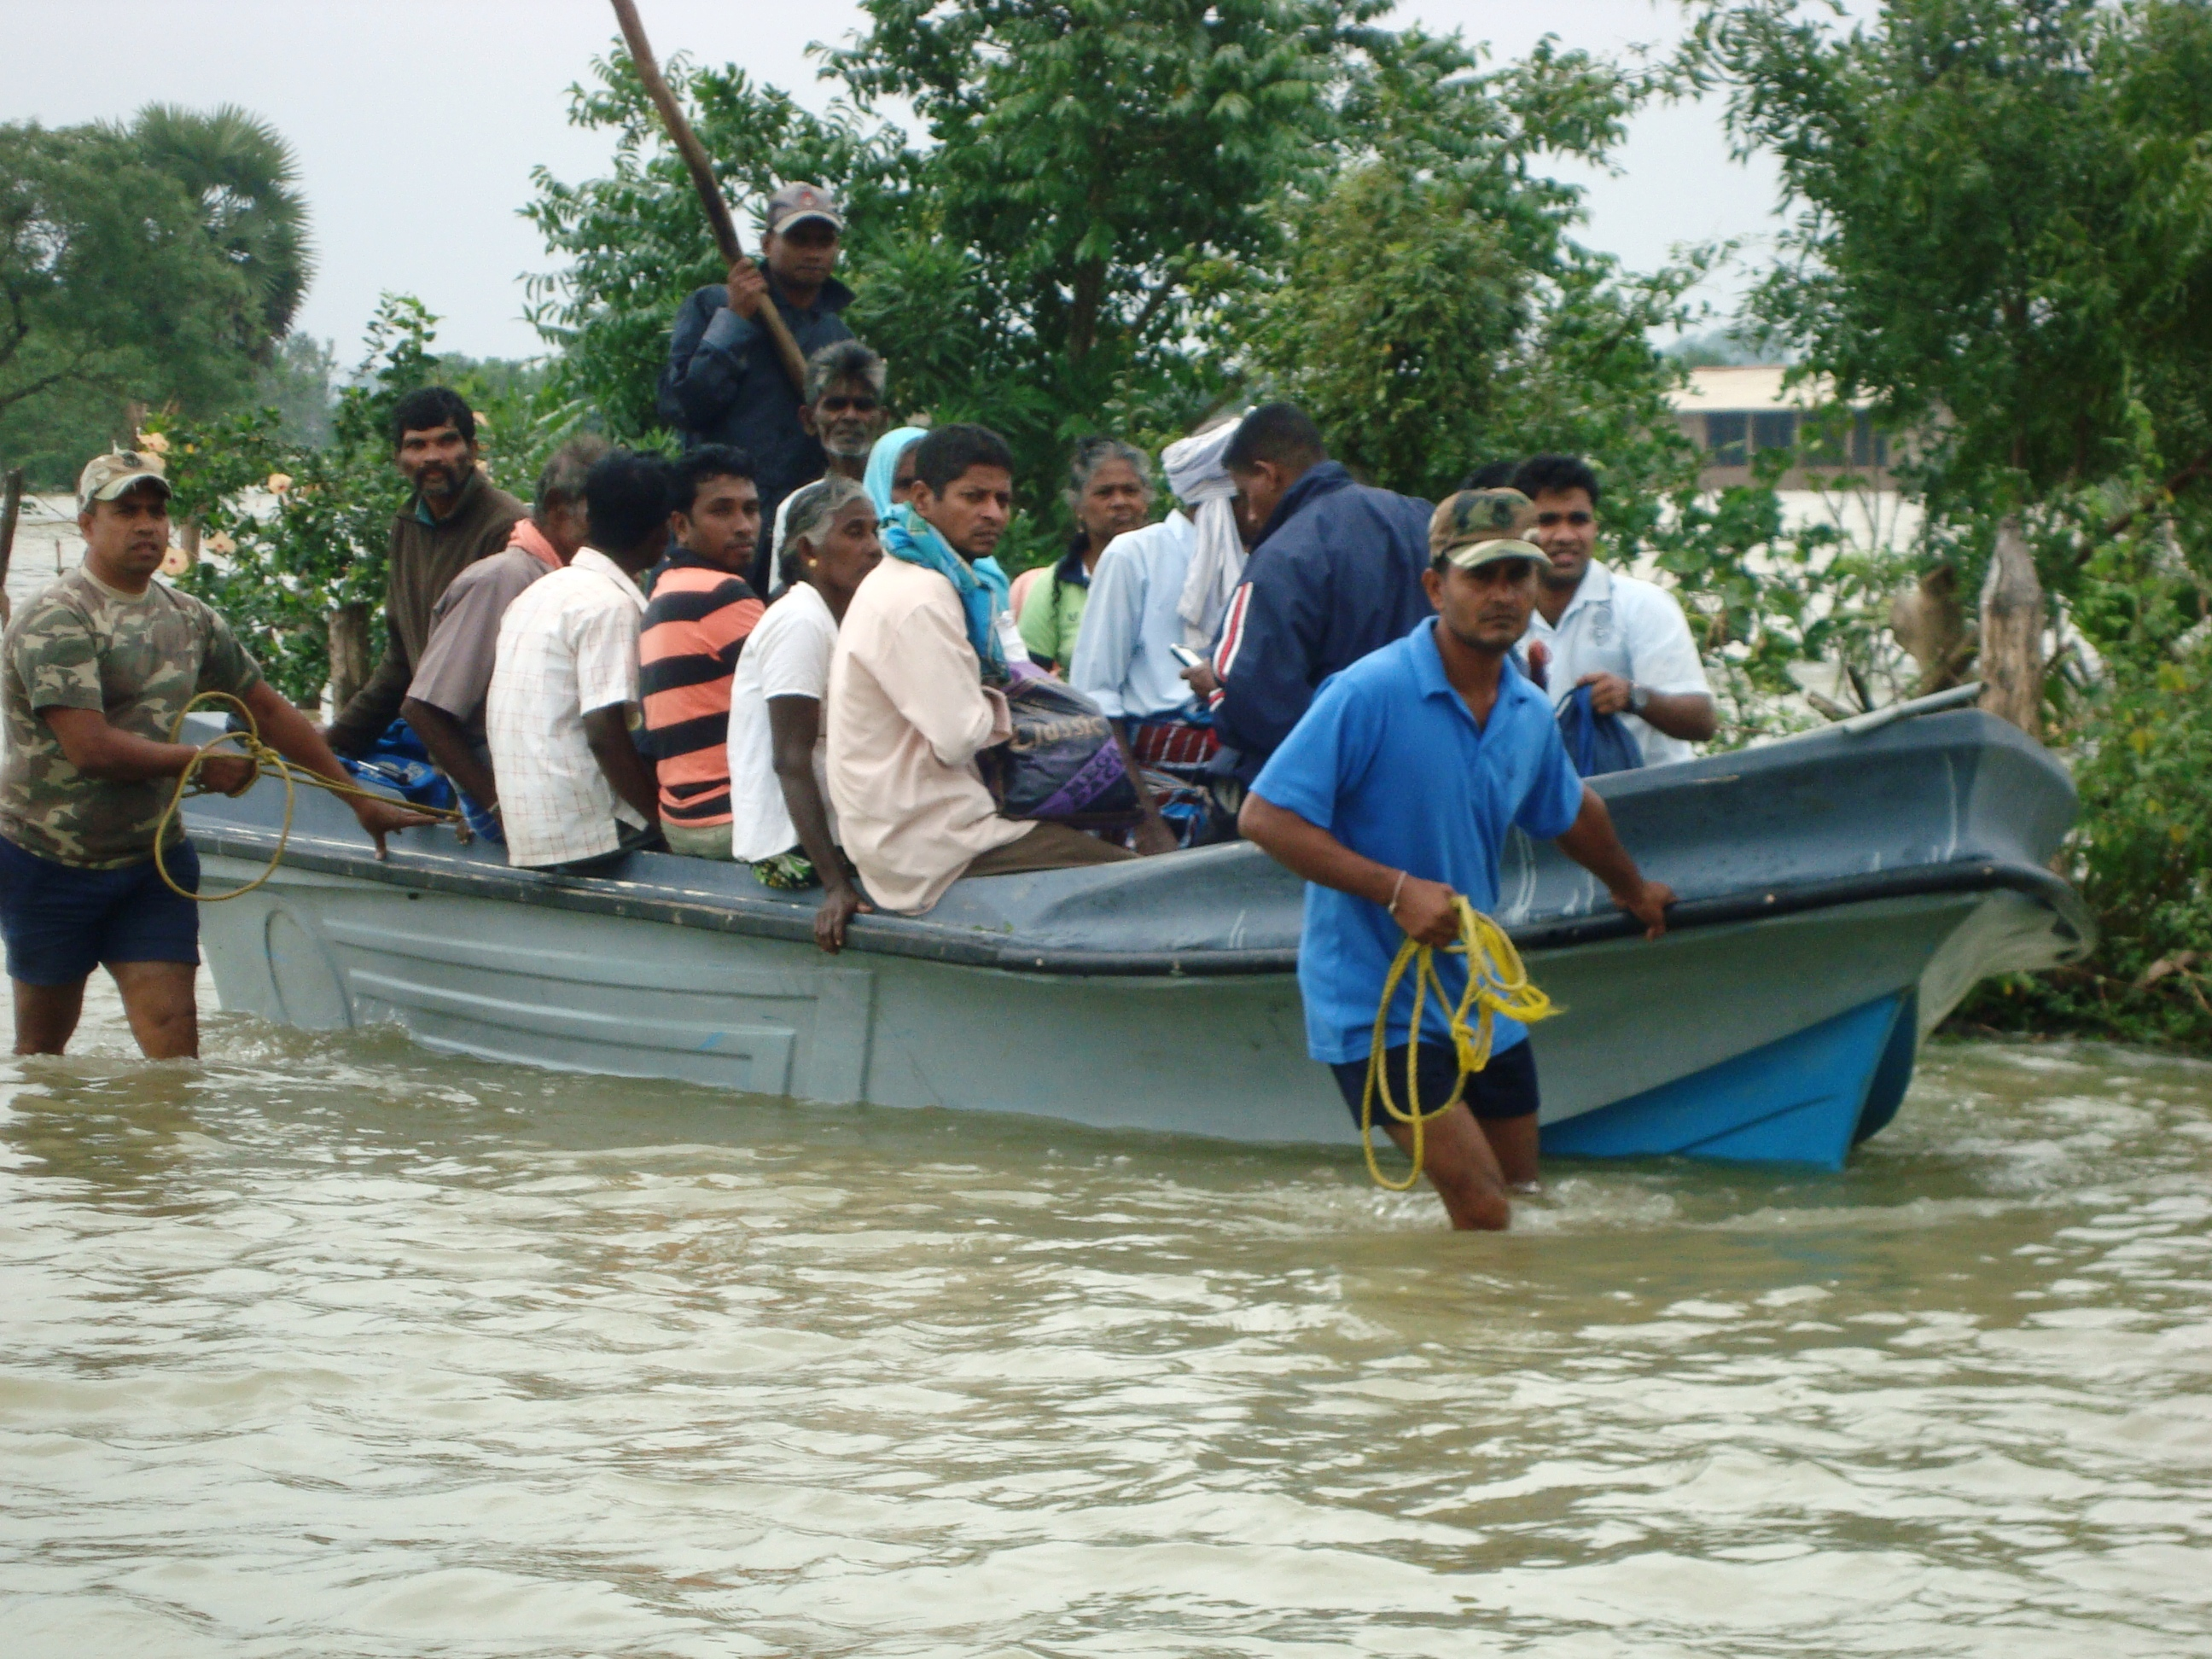 More than 20,000 people were affected across Sri Lanka by heavy rain and flooding on 17 December 2012